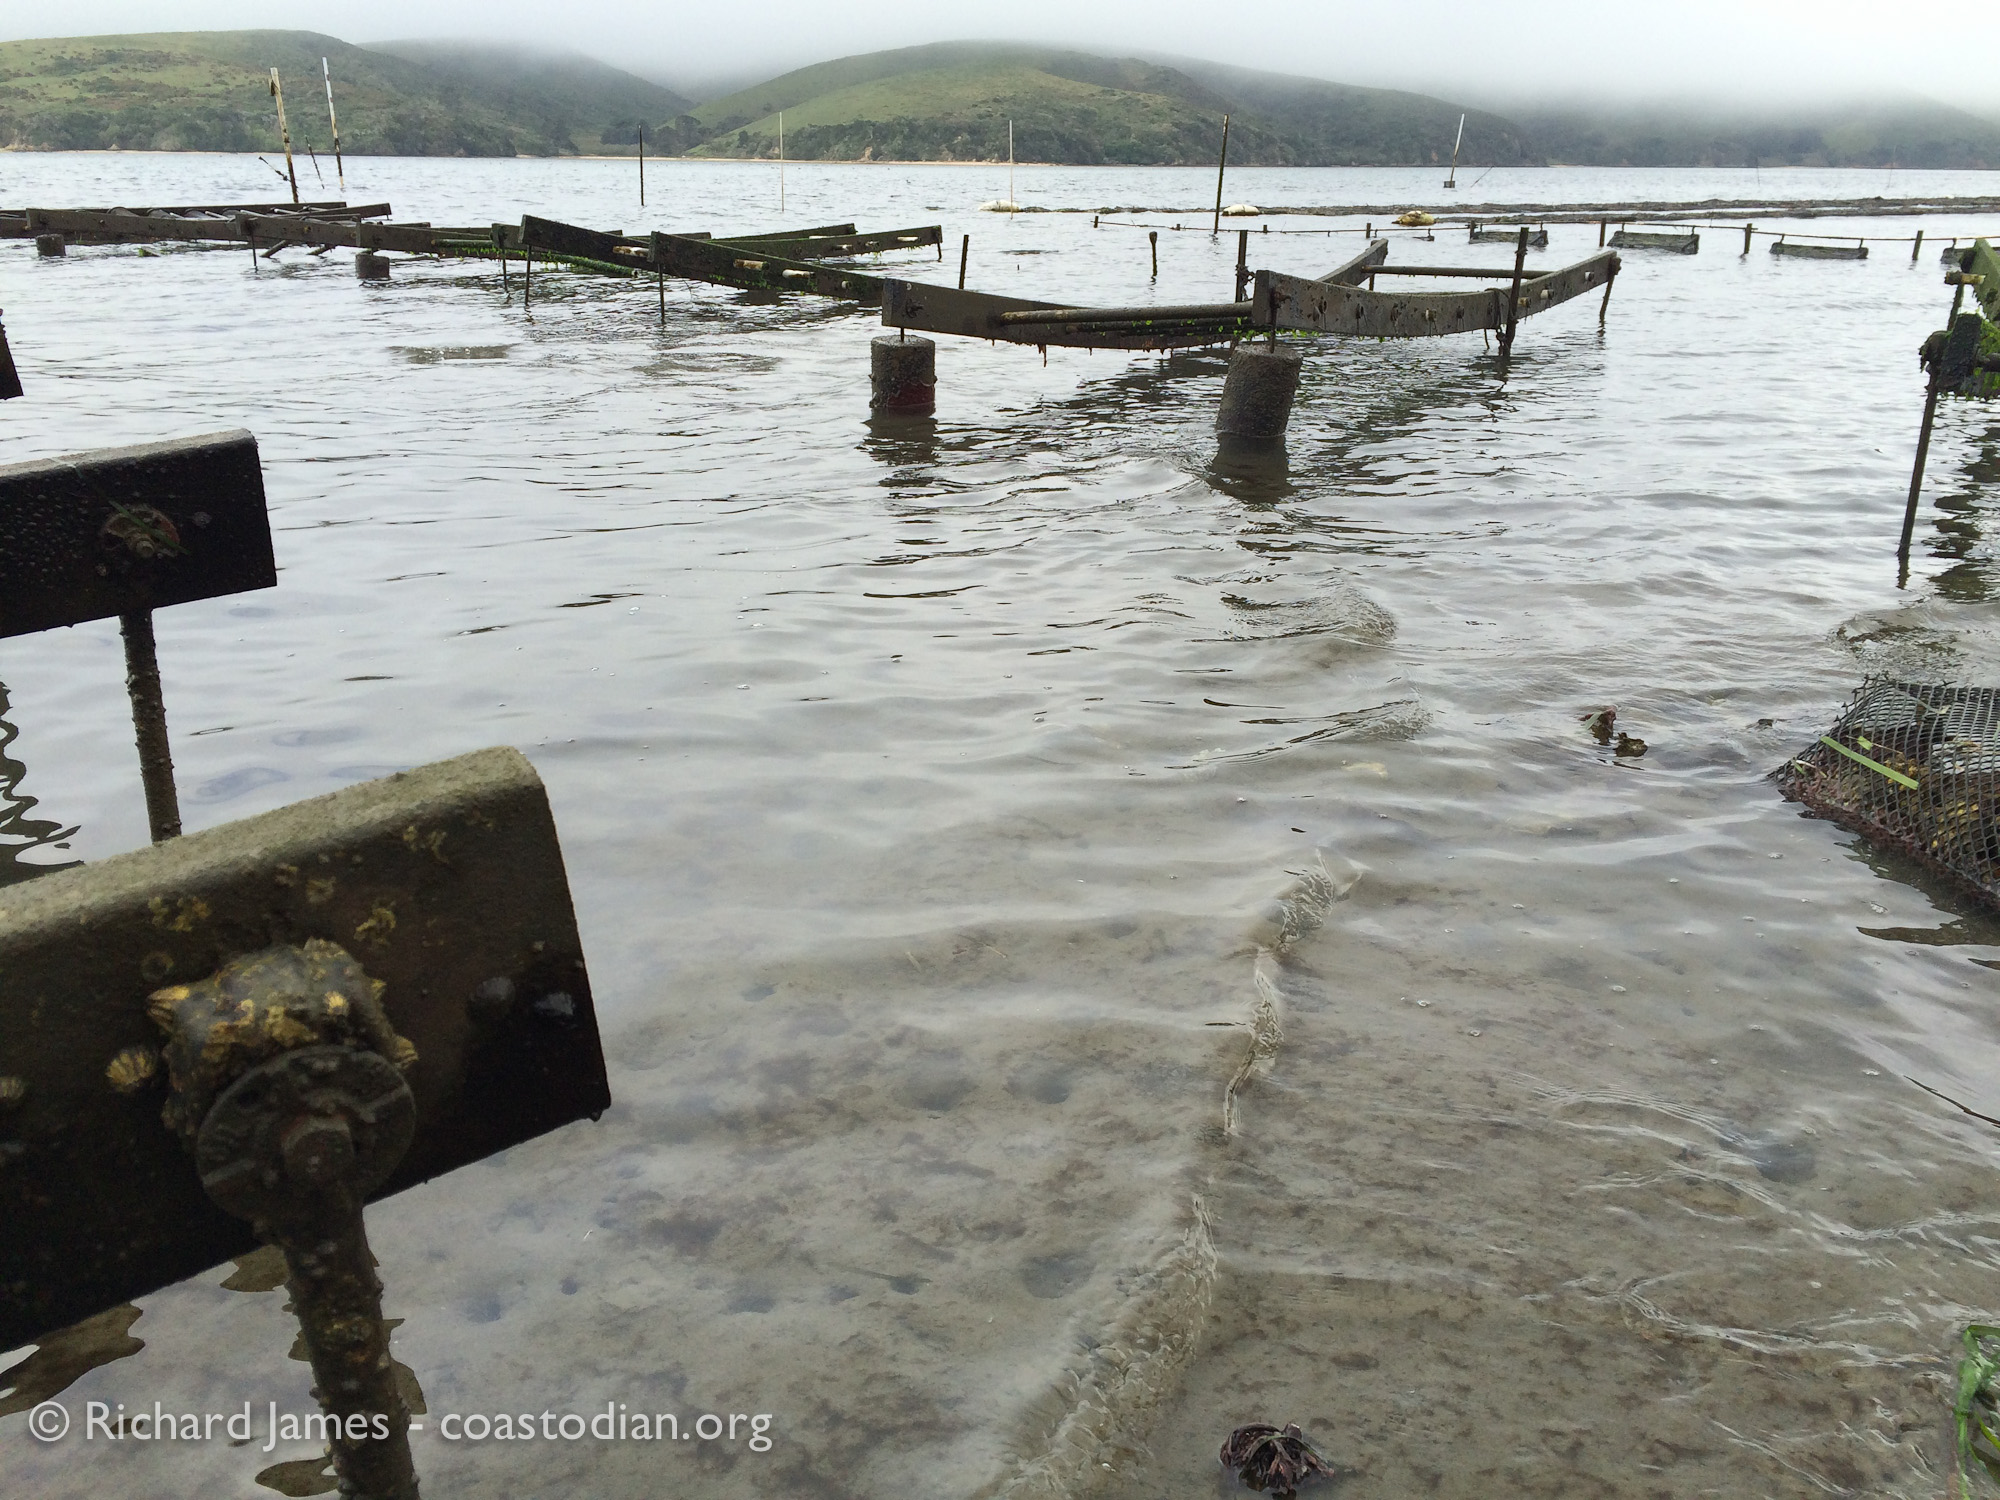 ©Richard James - coastodian.org Stanway oyster racks on Hog Island Oysters lease M-430-10 on 22 March, 2015